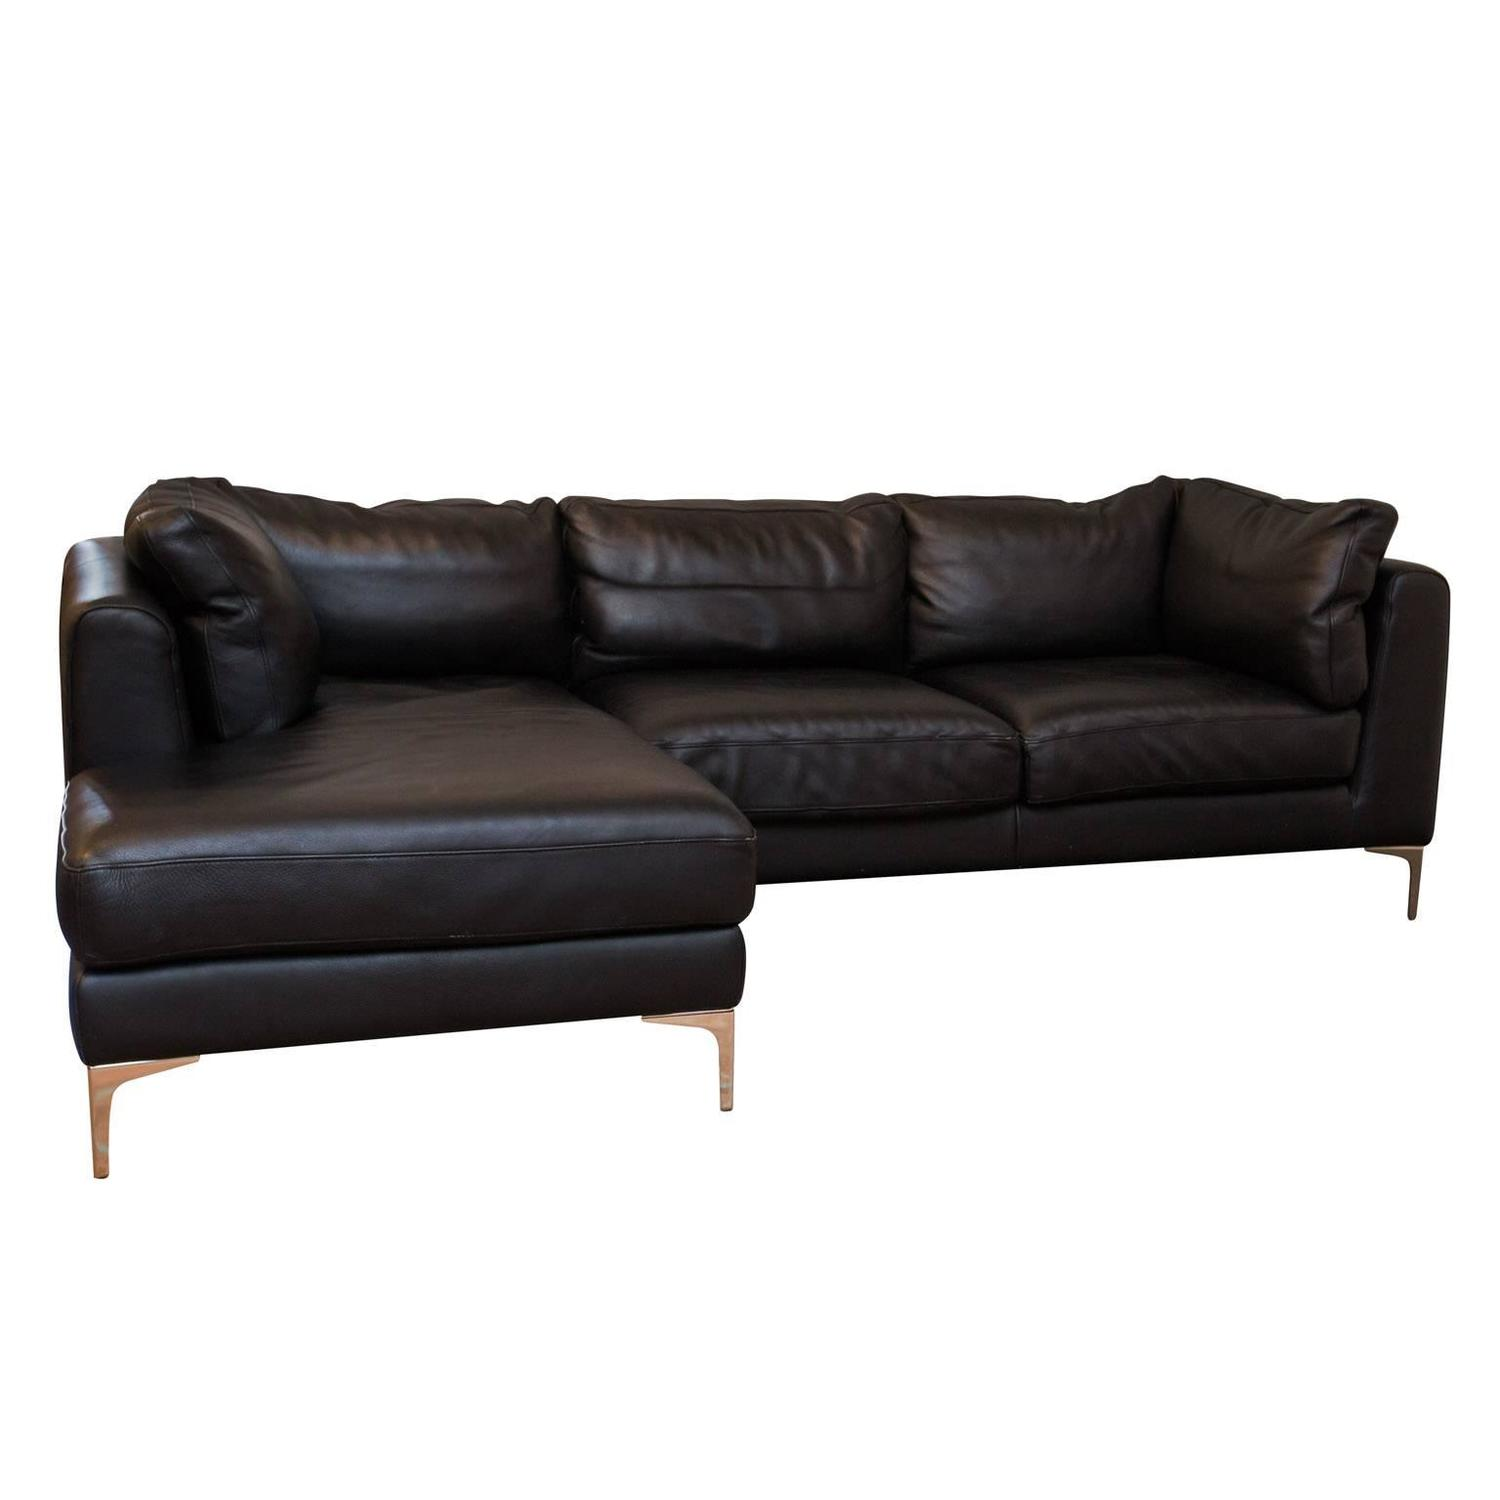 Alberto Leather Sectional from DWR at 1stdibs